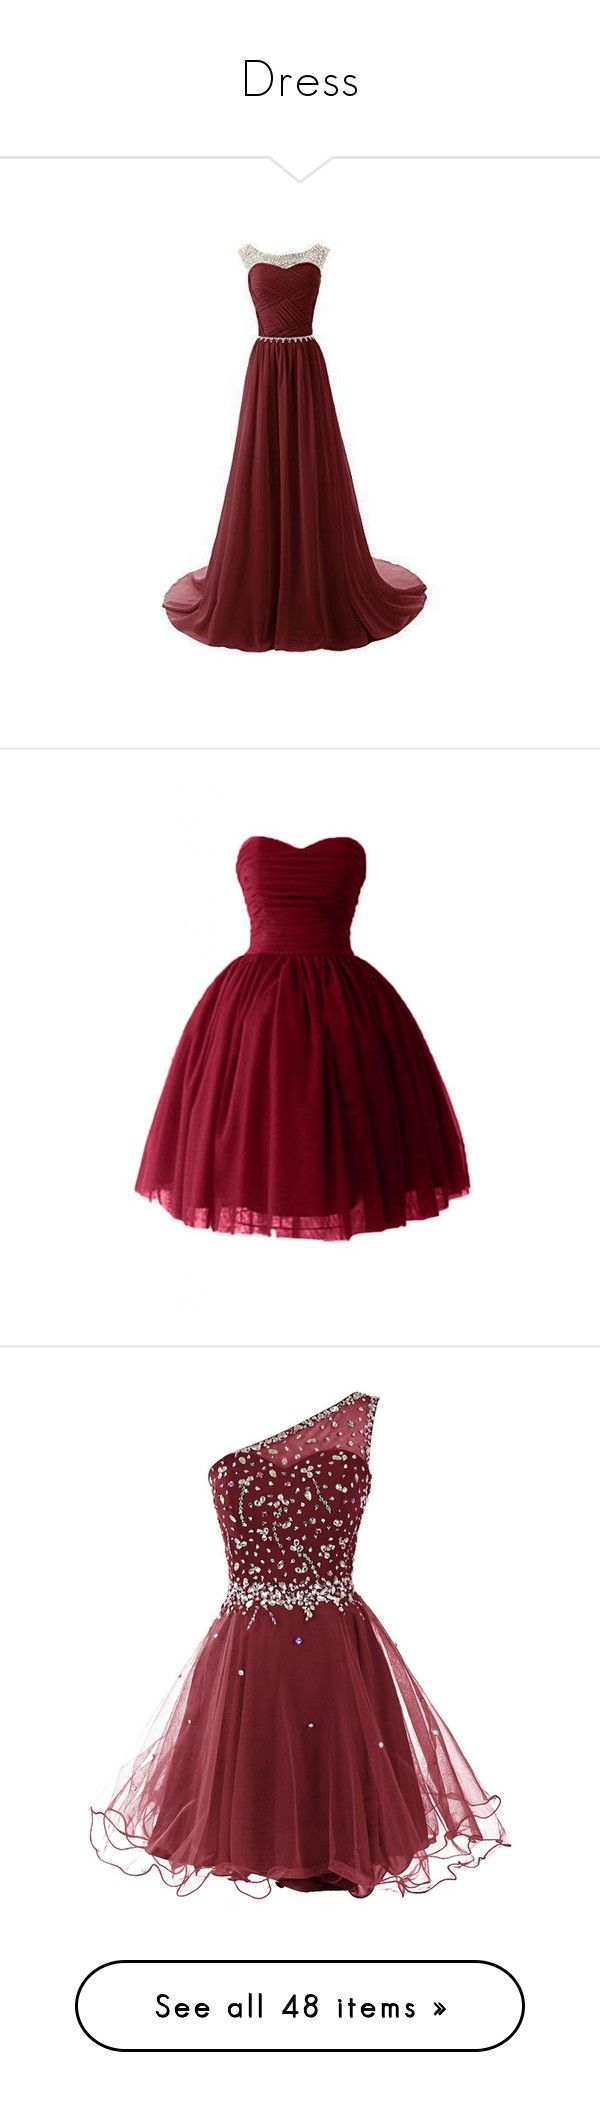 """Dress"" by beingmyselfaf ❤ liked on Polyvore featuring dress, formal, long, short, tops, a line tops, round neck top, red top, dresses and short dresses"